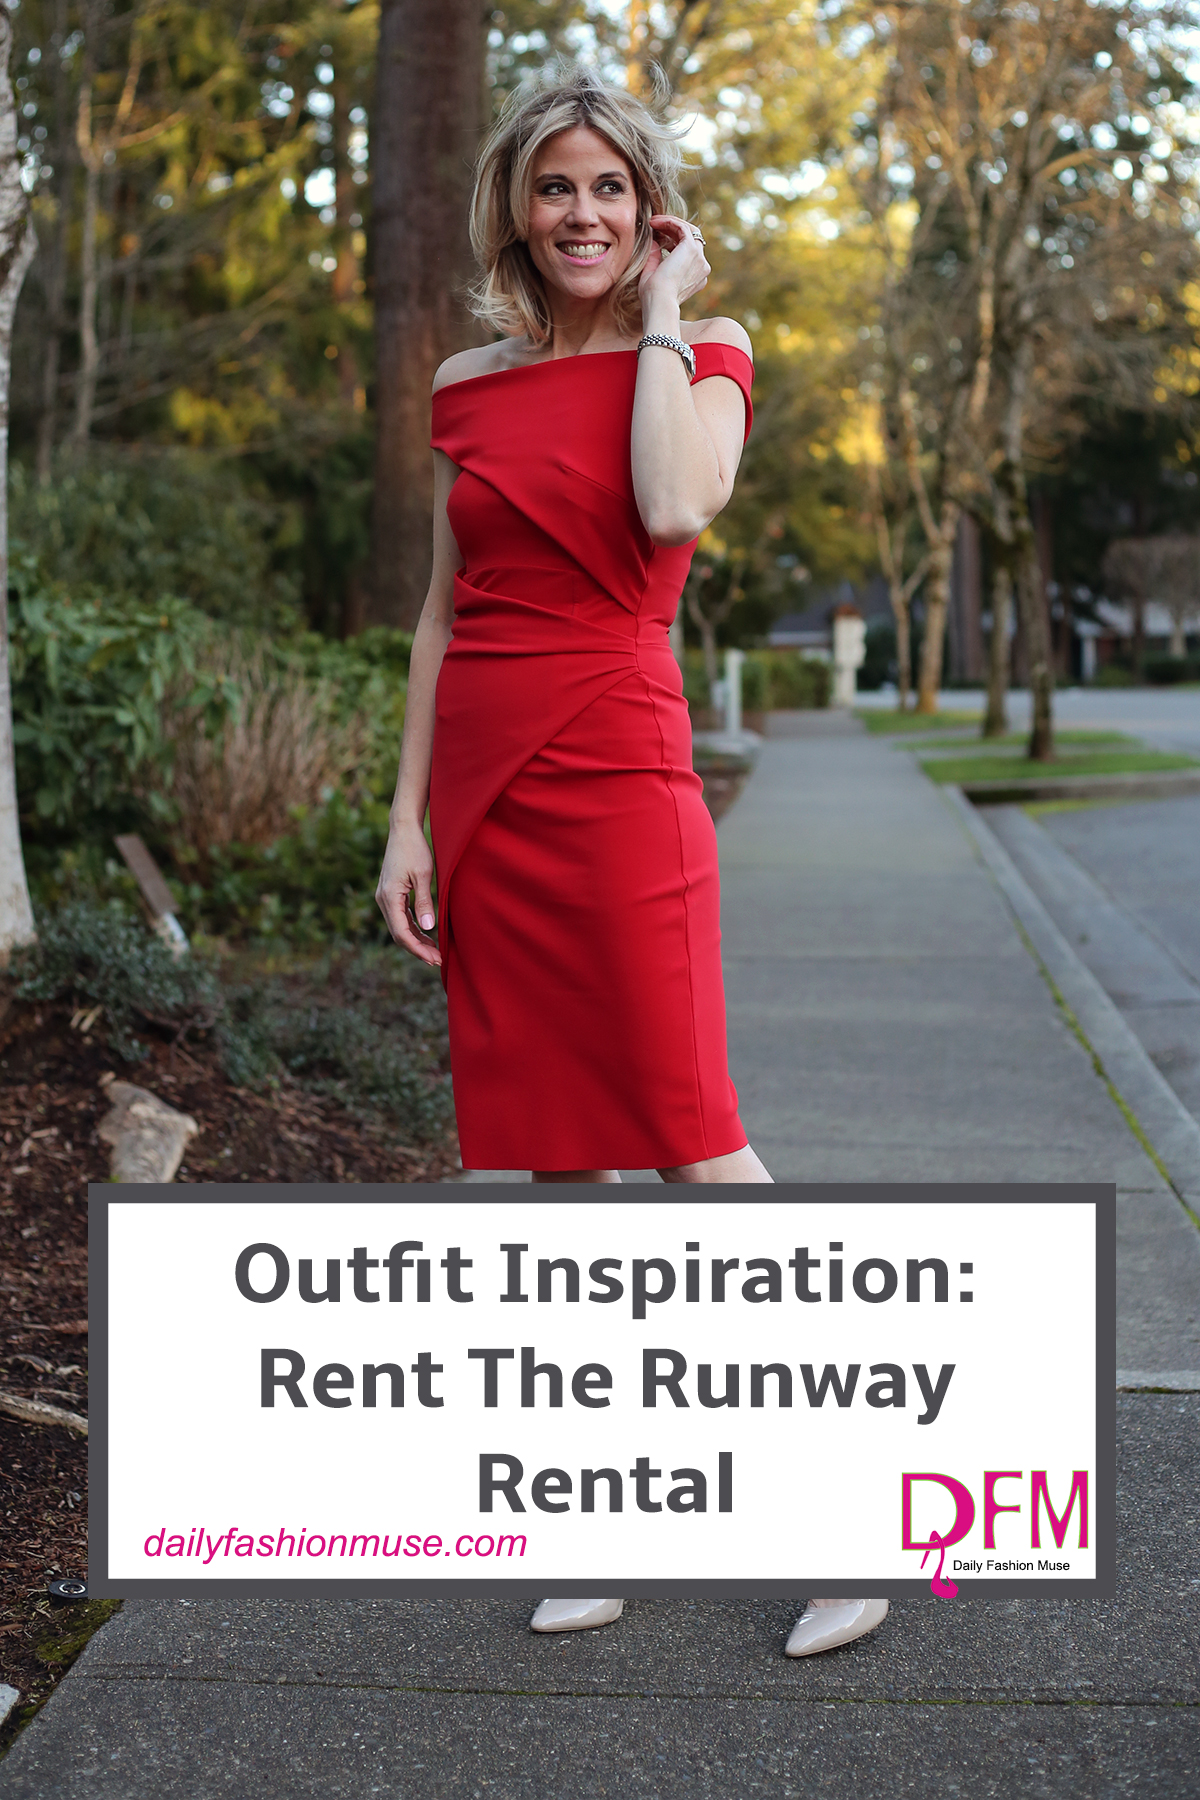 Use Rent The Runway for all your big events. After all who wants to always wear the same special dress to all your special events.